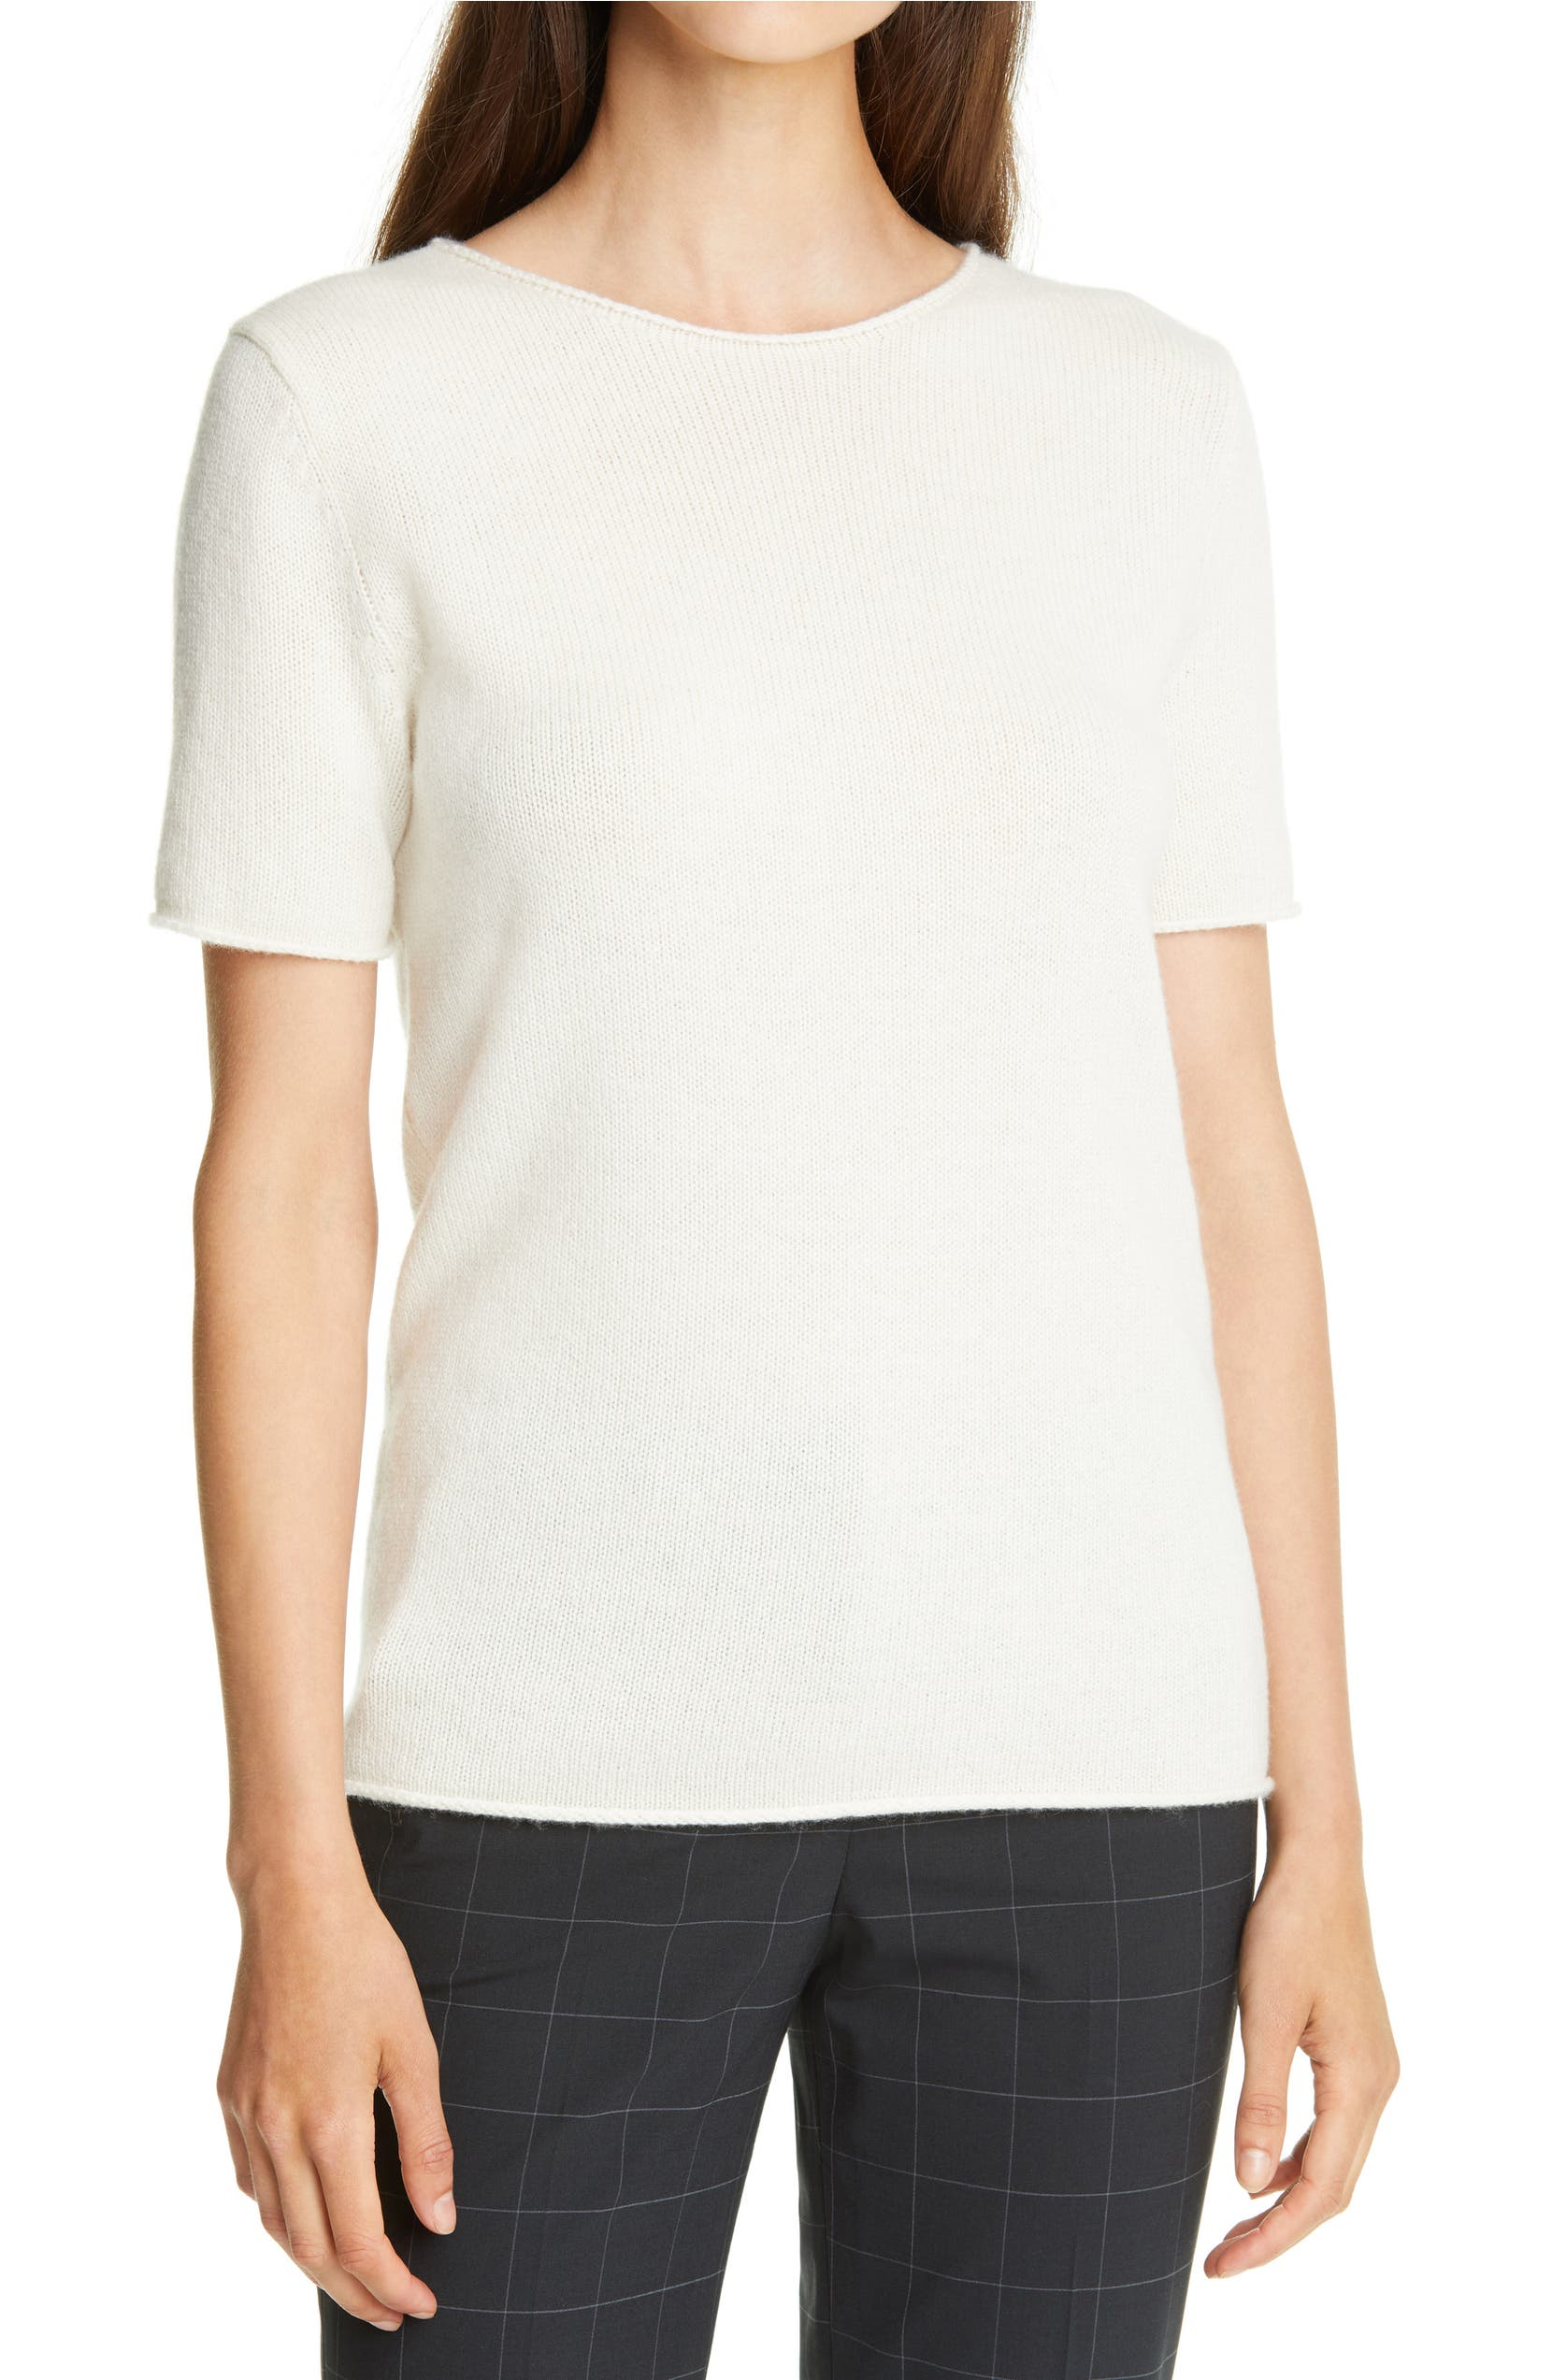 THEORY Tolleree Short Sleeve Cashmere Sweater, Main, color, IVORY